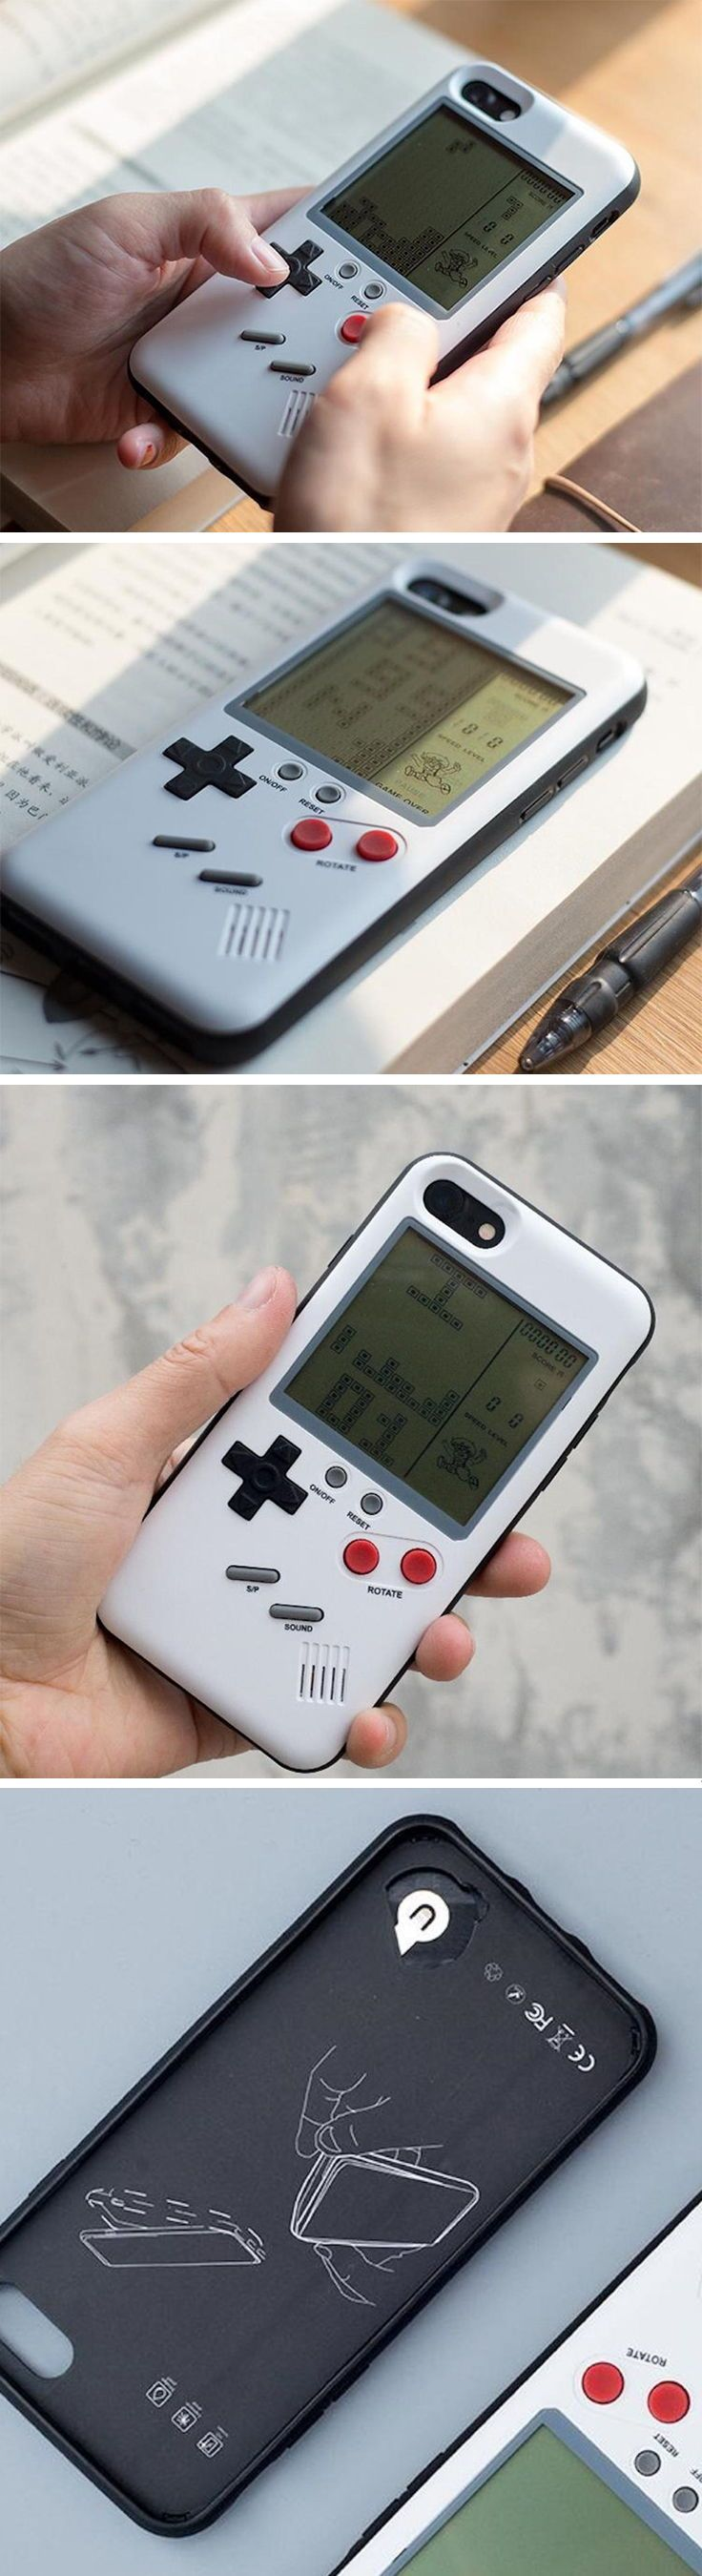 The Wanle phone case for the iPhone turns your futuristic device into a slice of retro gaming heaven. It uses the backside of your phone and turns it into a retro Gameboy of sorts, letting you play classic games like Tetris, Tank, F1 Racing, and the legendary Snake. Without inhibiting any of your iPhone's functions or ports, the Wanle case sits nicely on the back of your smartphone, turning what would be just a plain metal surface into a gamer's paradise. BUY NOW!